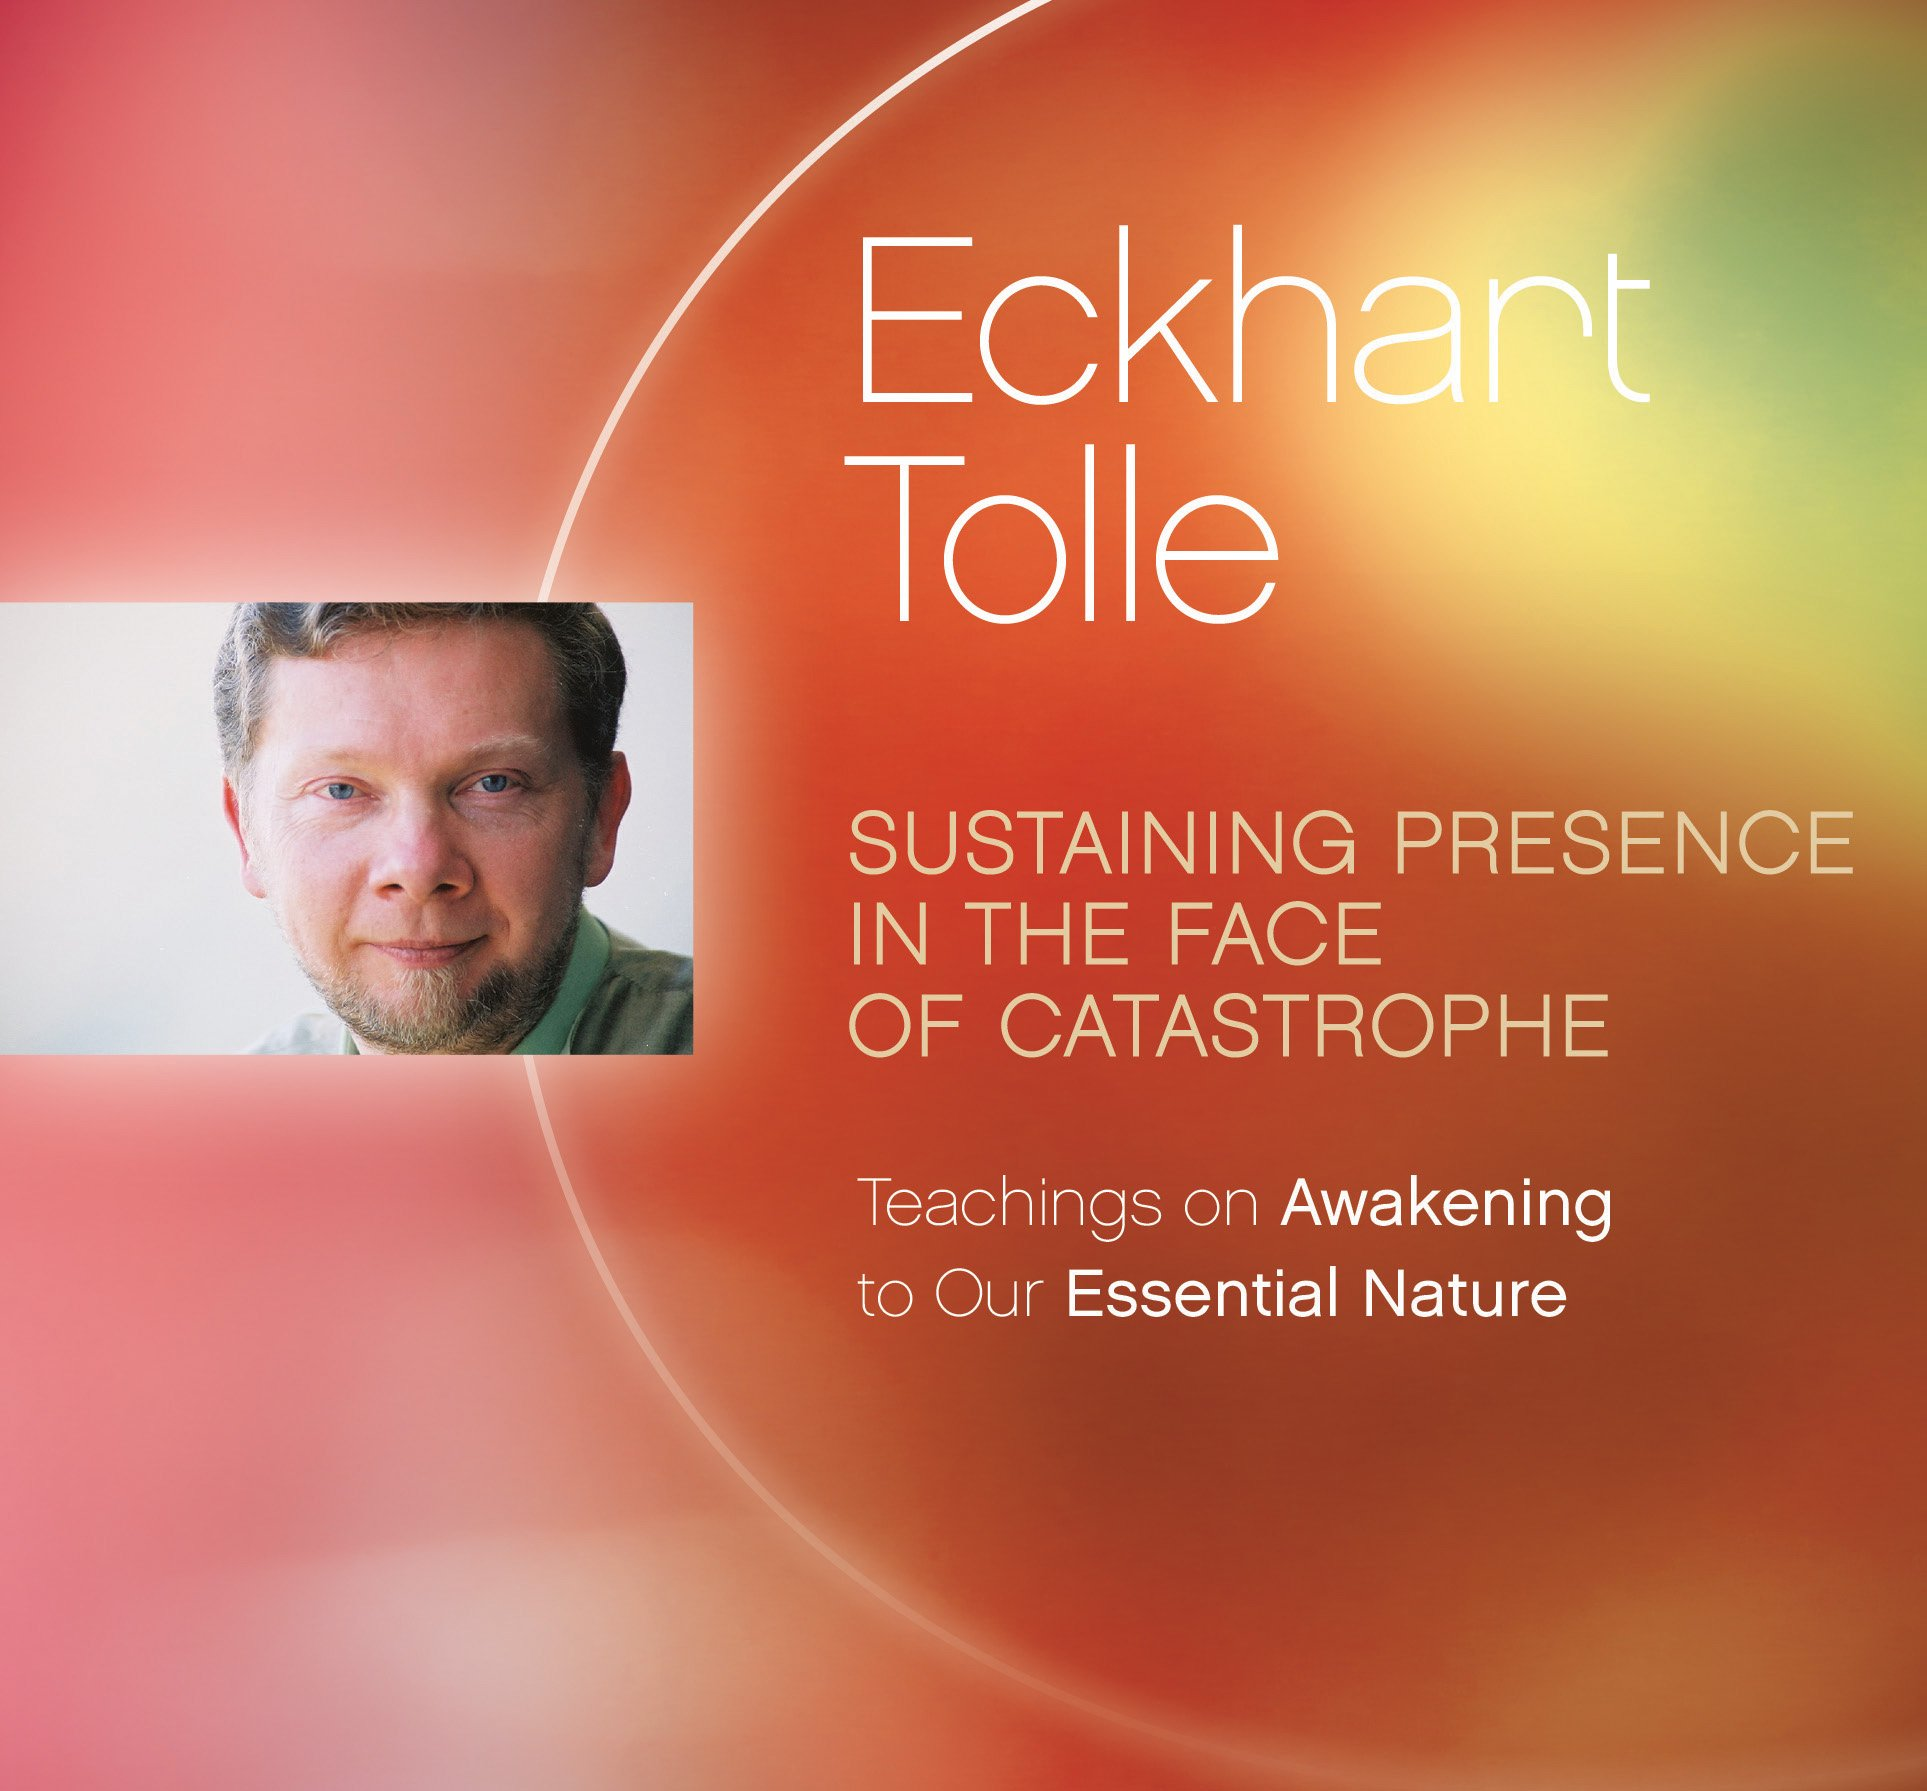 Sustaining Presence in the Face of Catastrophe: Teachings on Awakening to Our Essential Nature by Eckhart Teachings, Inc.